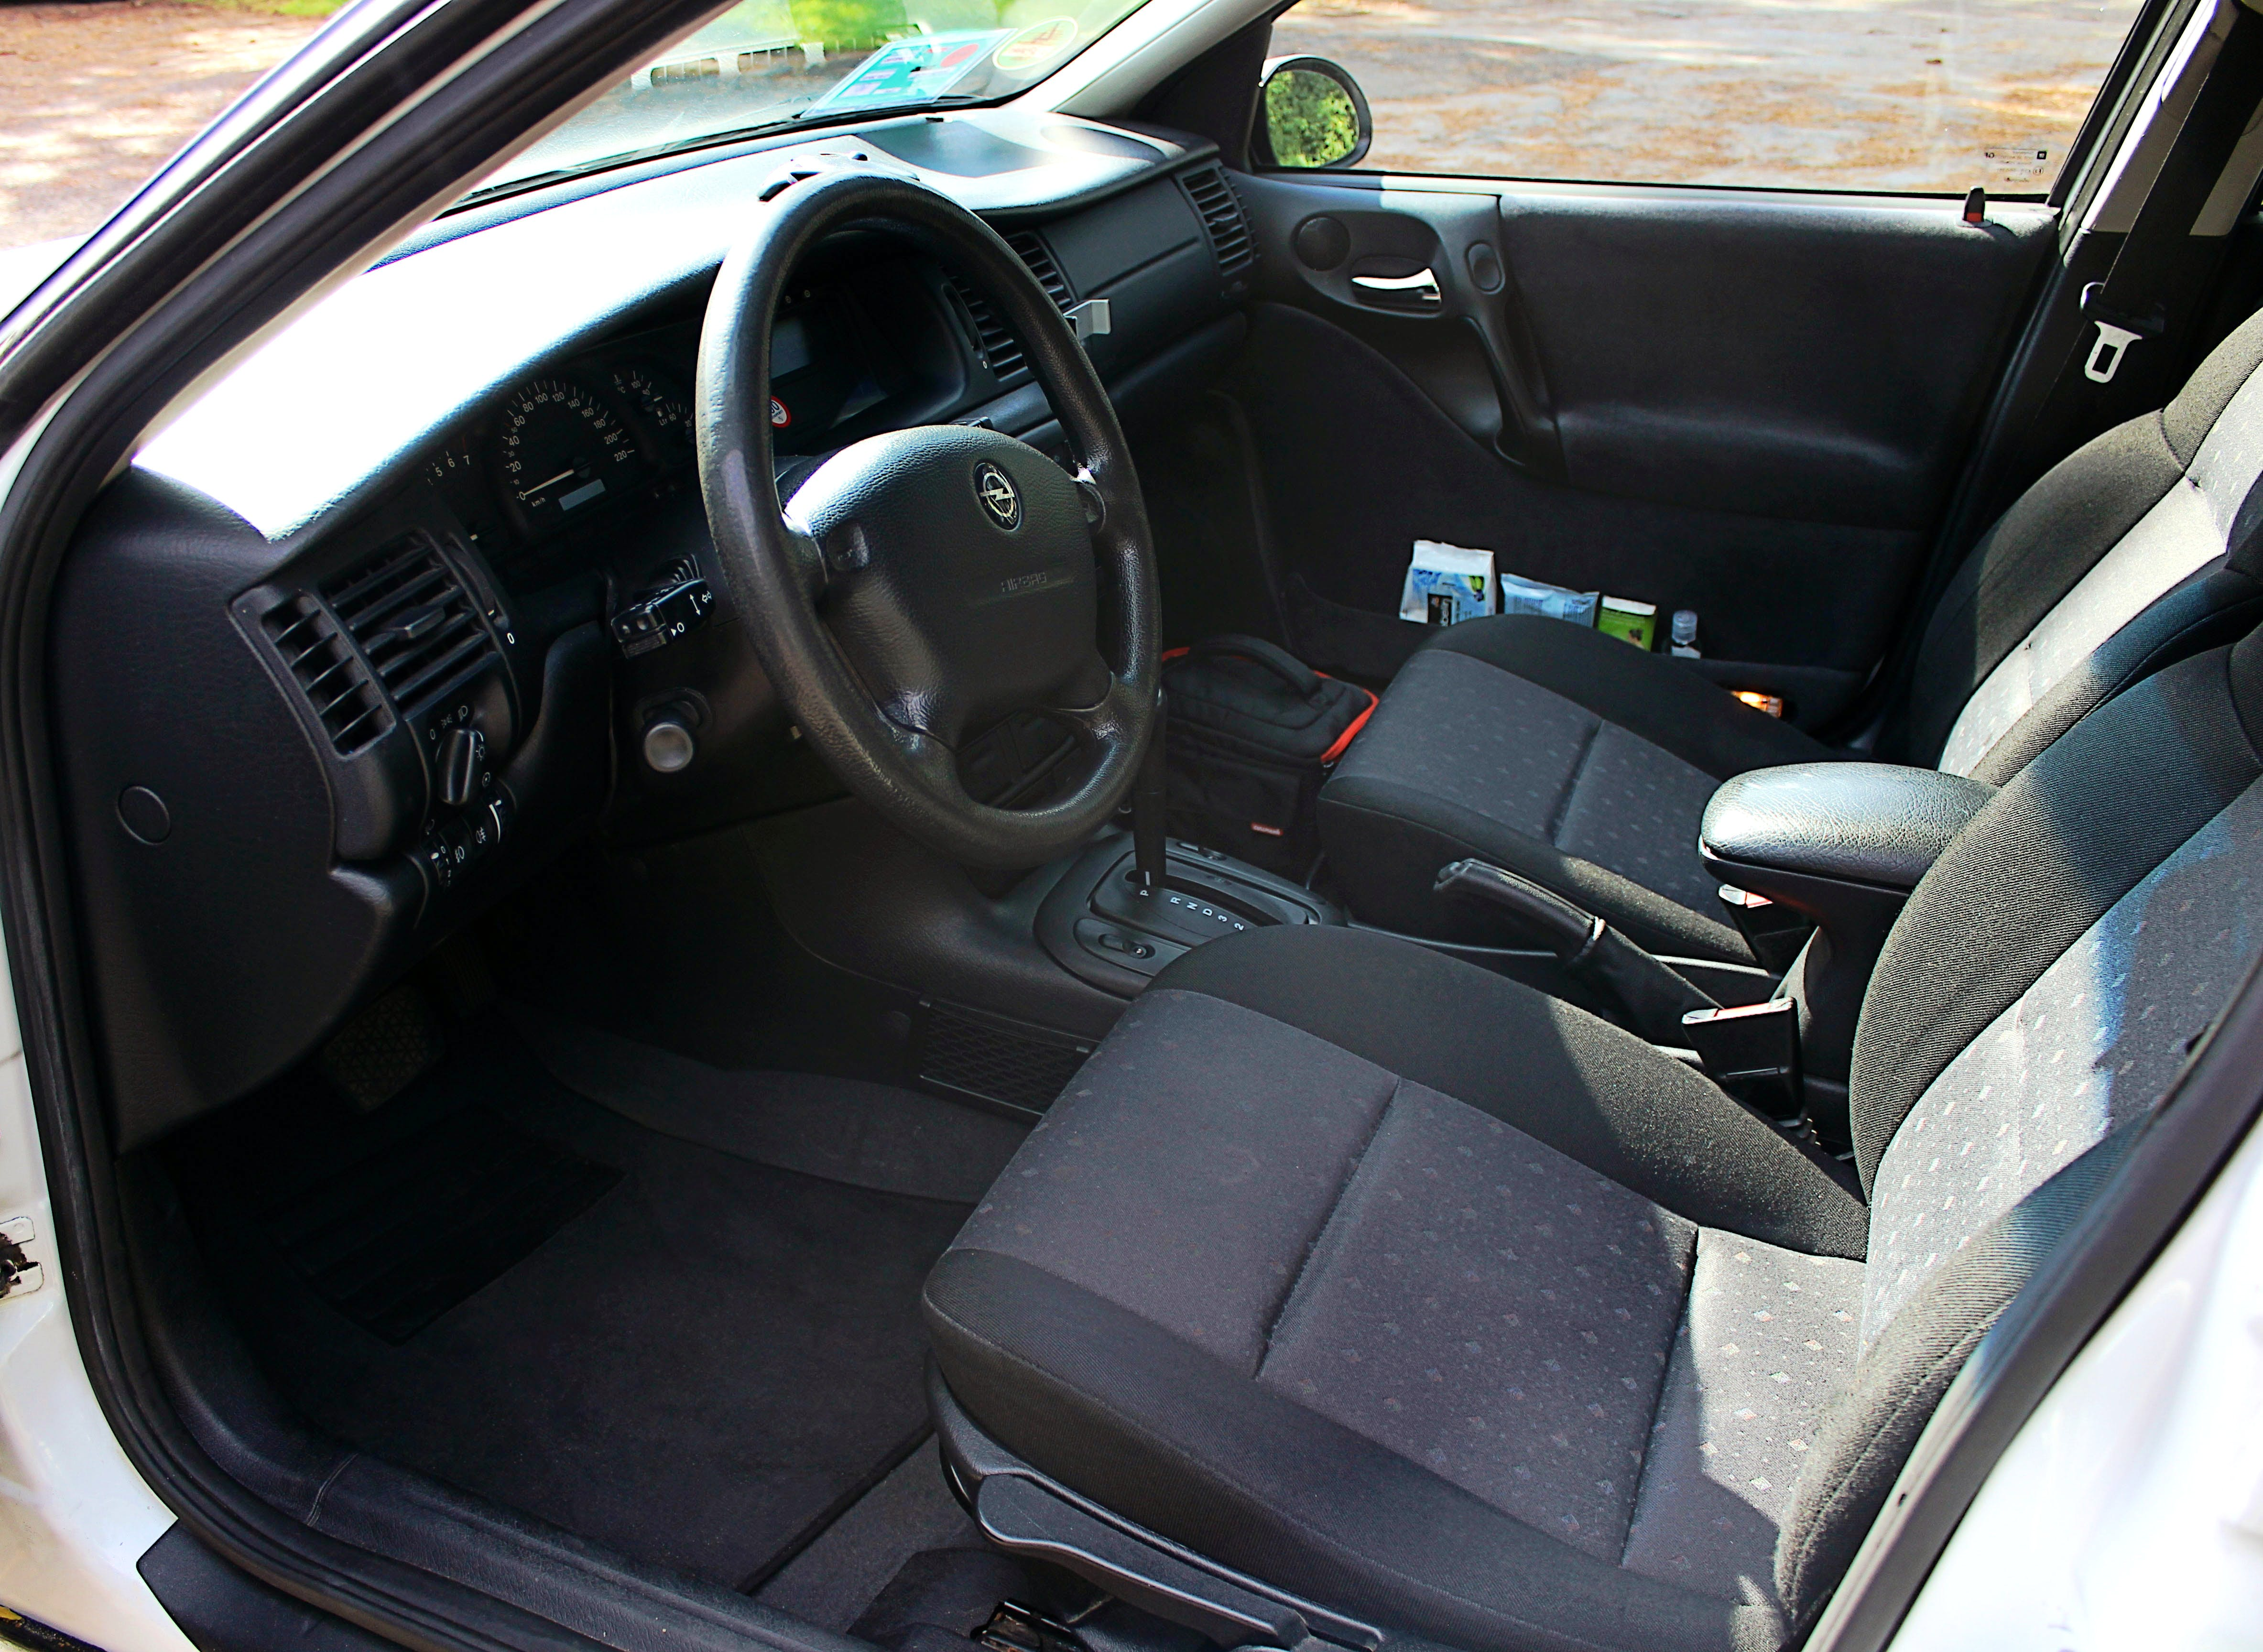 Opel Vectra 1.8l mit CD-Player